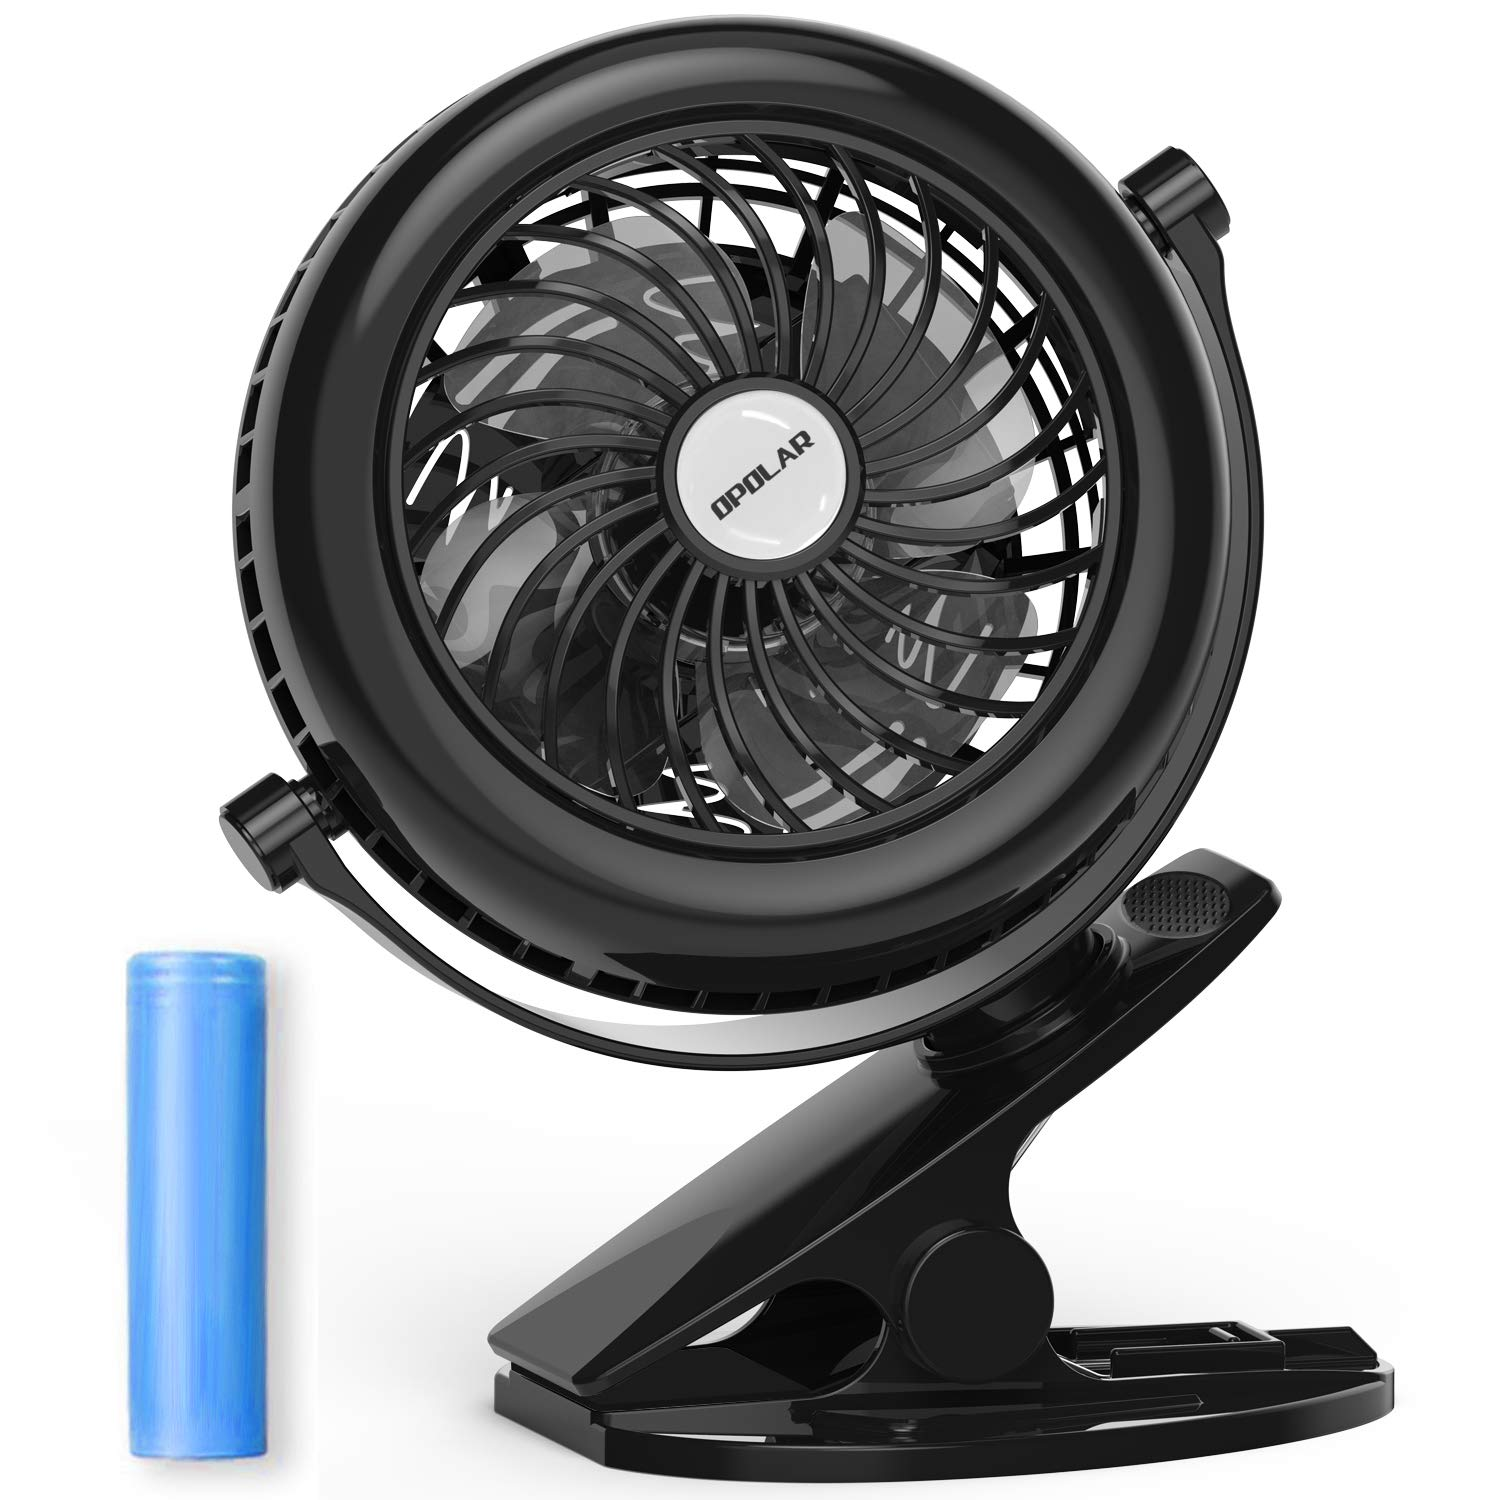 OPOLAR Battery Operated Clip on Fan, Strong Clamp, 4 Speeds, 360 Degree Rotation Fan for Baby Stroller, Golf Cart, Hurricanes, Treadmill, Outdoors